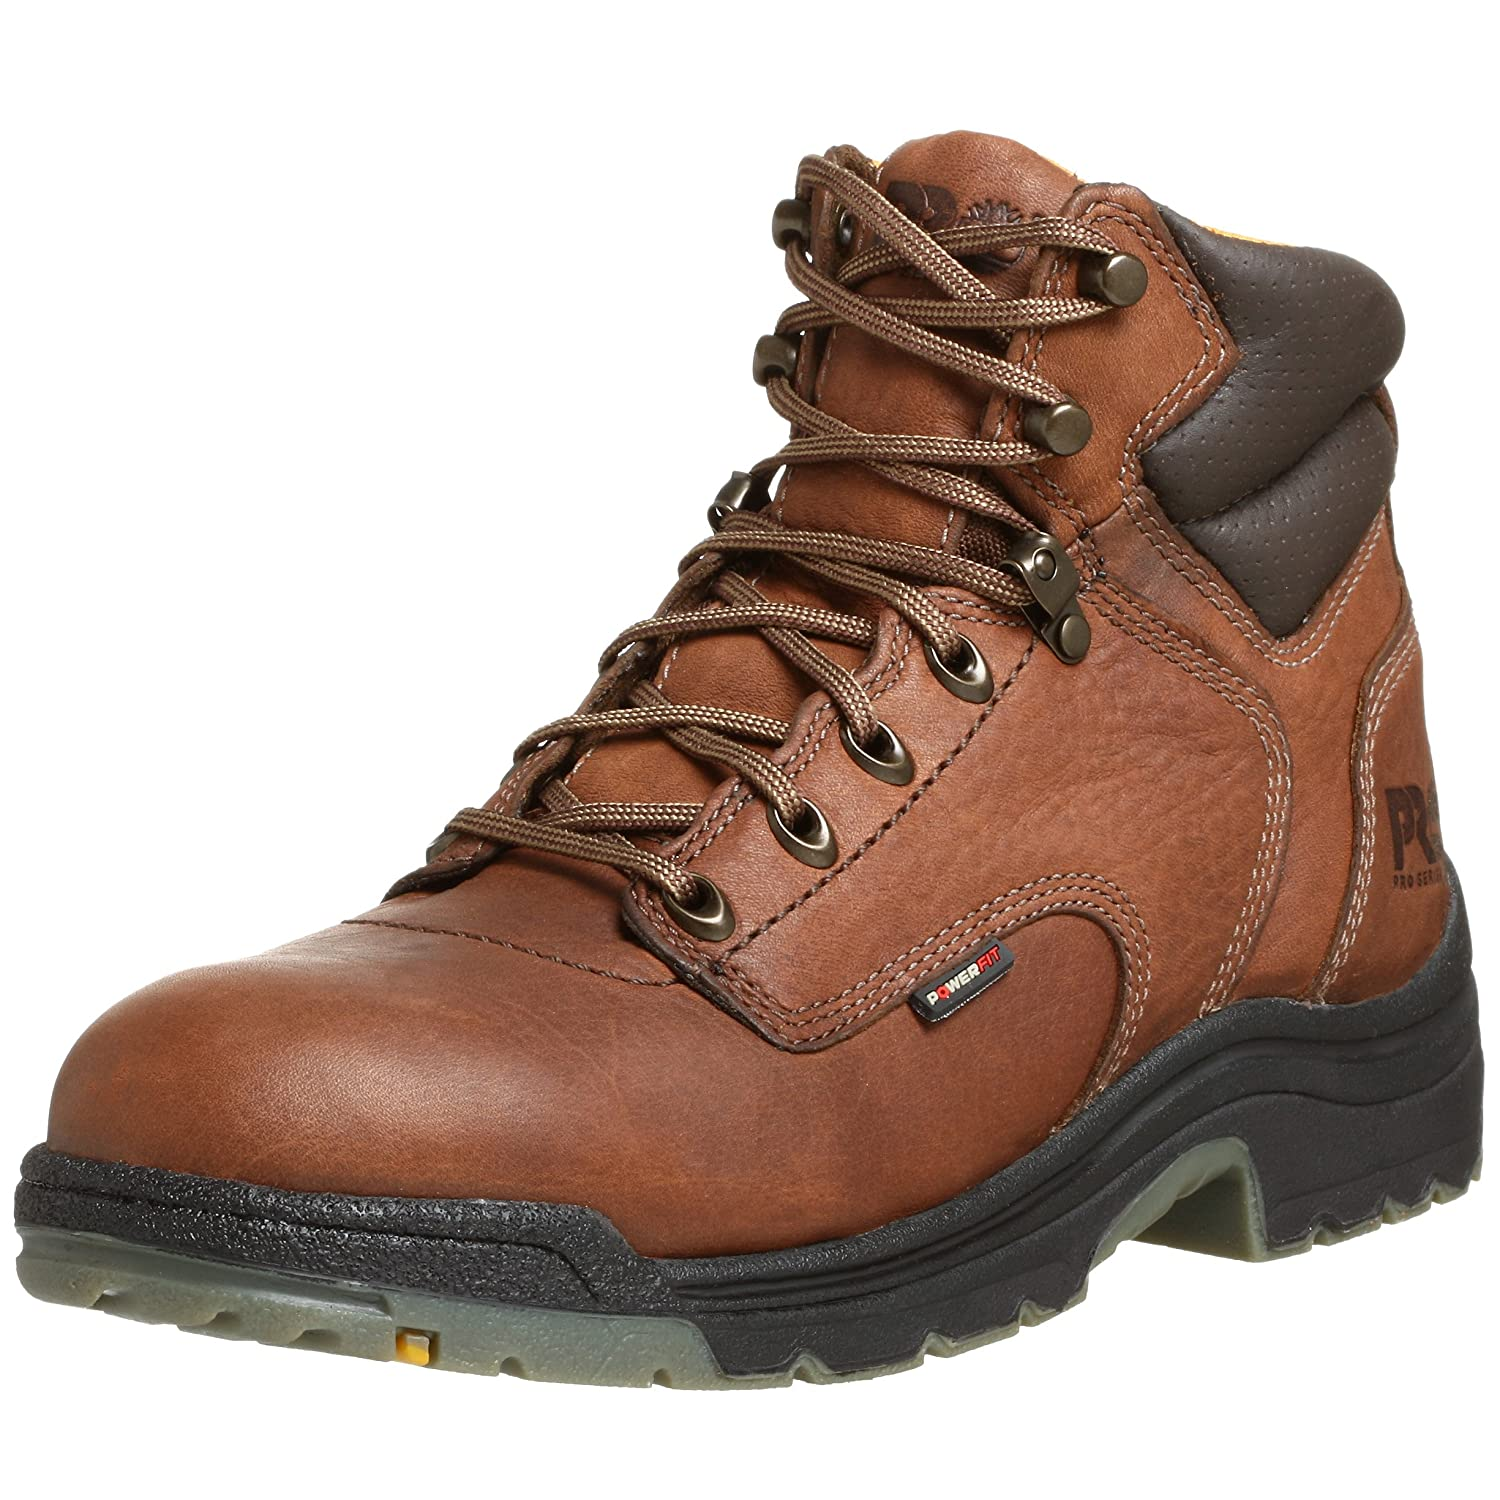 Timberland Pro Men's Titan 6 Soft Toe Boot,Coffee,10.5 M